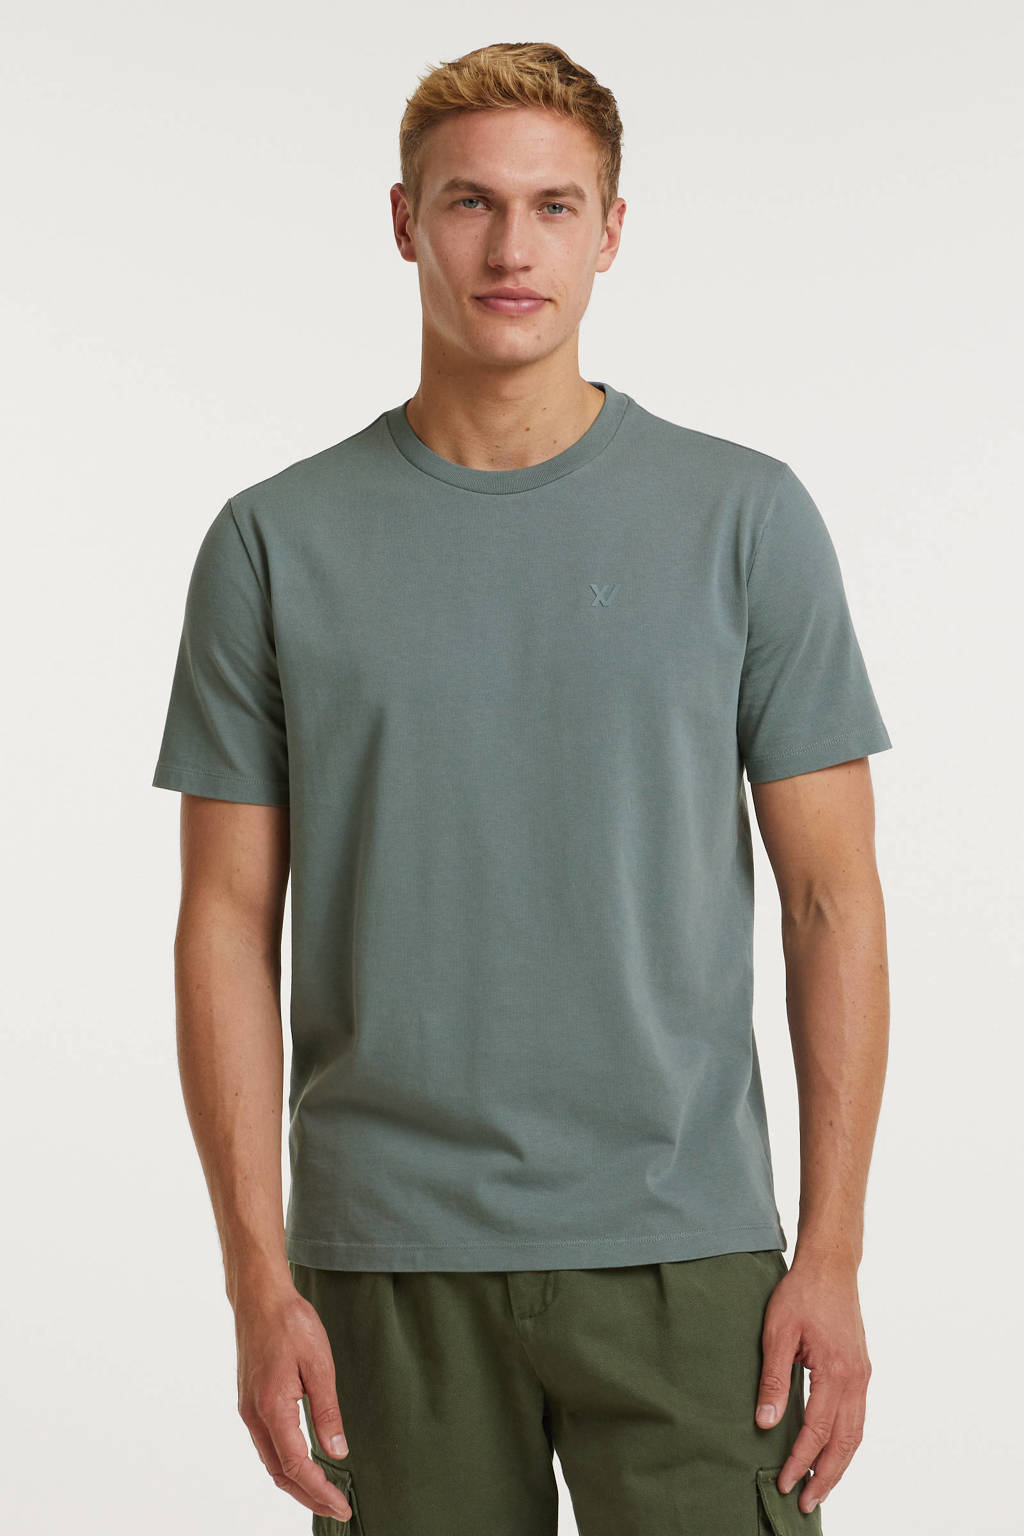 PME Legend T-shirt XV 9096 stormy weather